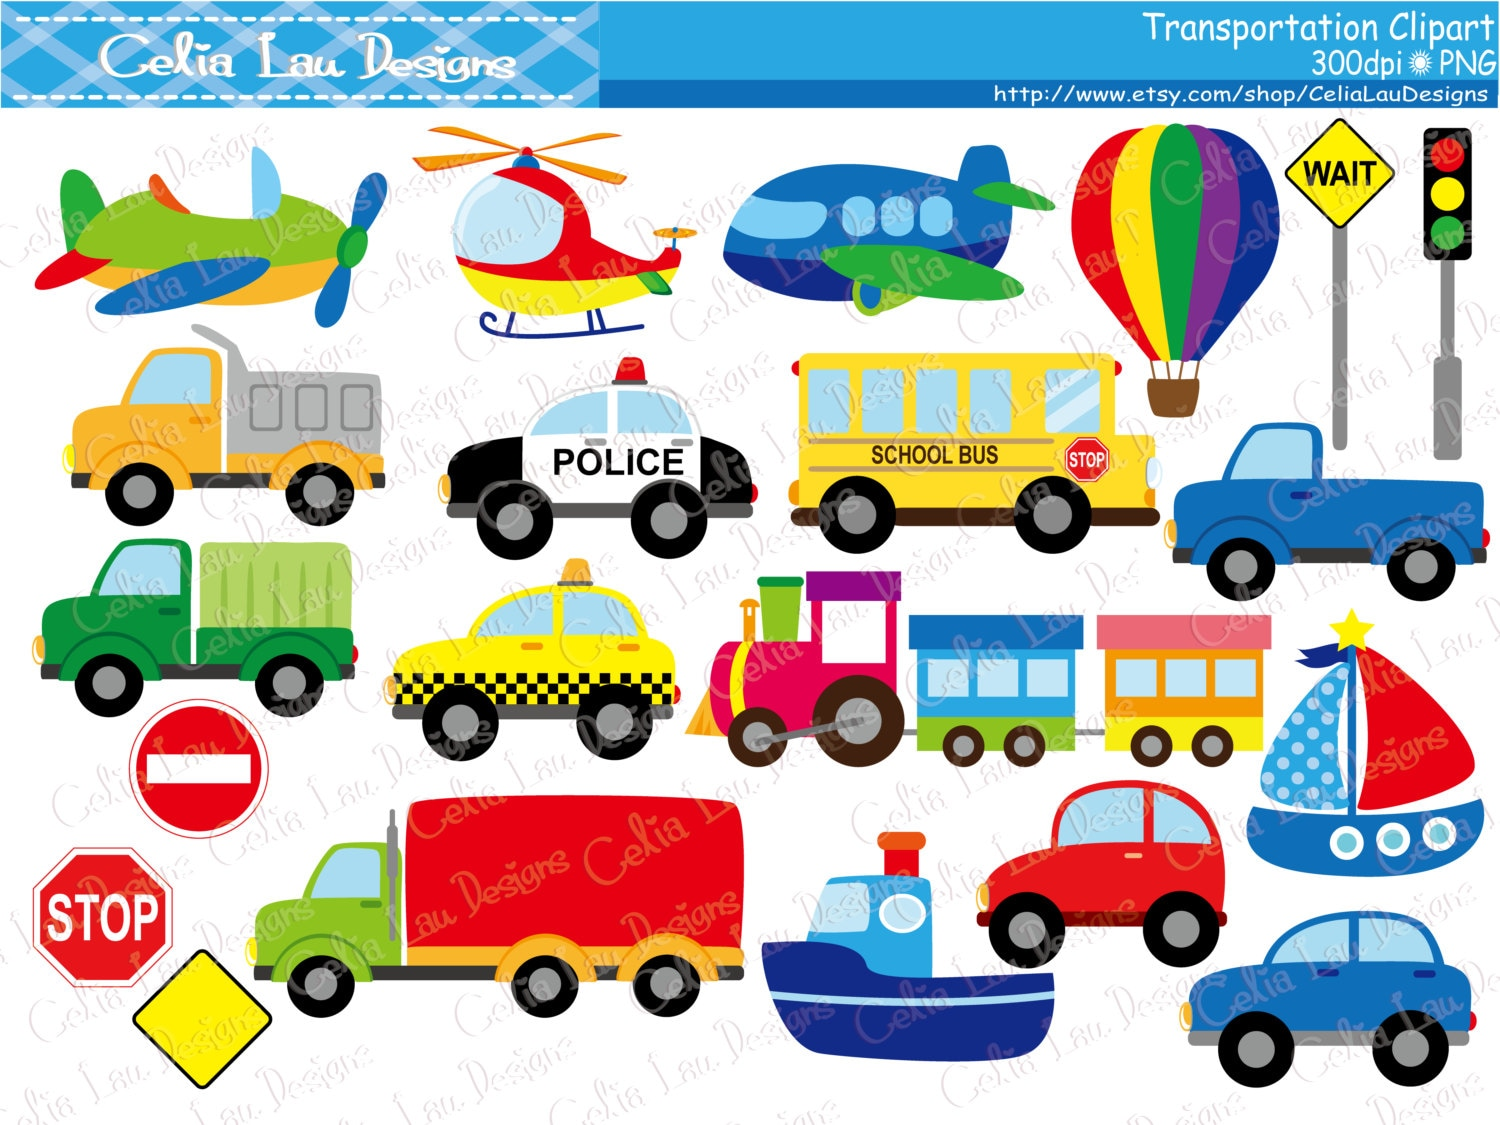 Preferred Transportation Clipart Car Taxi School Bus Police Car IG54